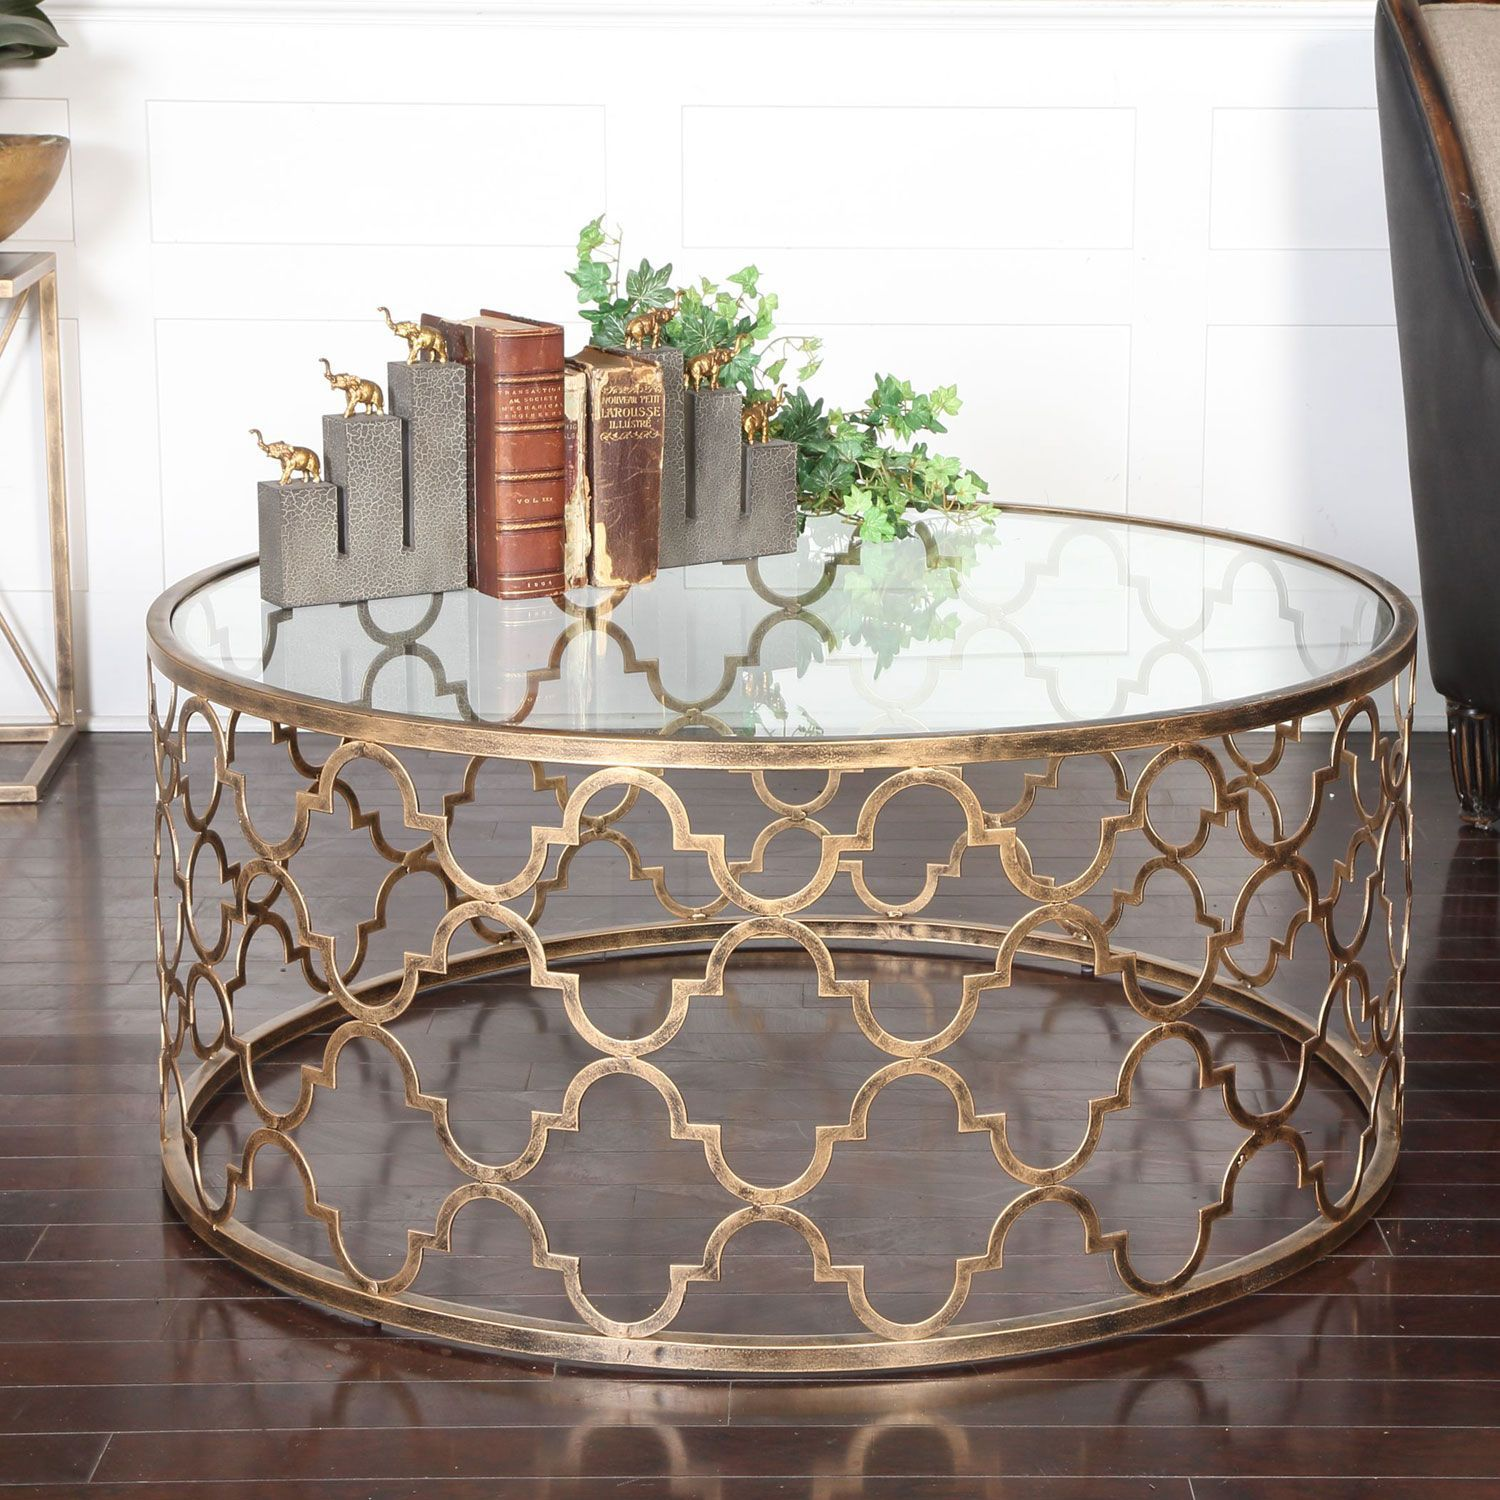 Heavy iron in antique gold finish with clear tempered glass uttermost accent furniture combines premium